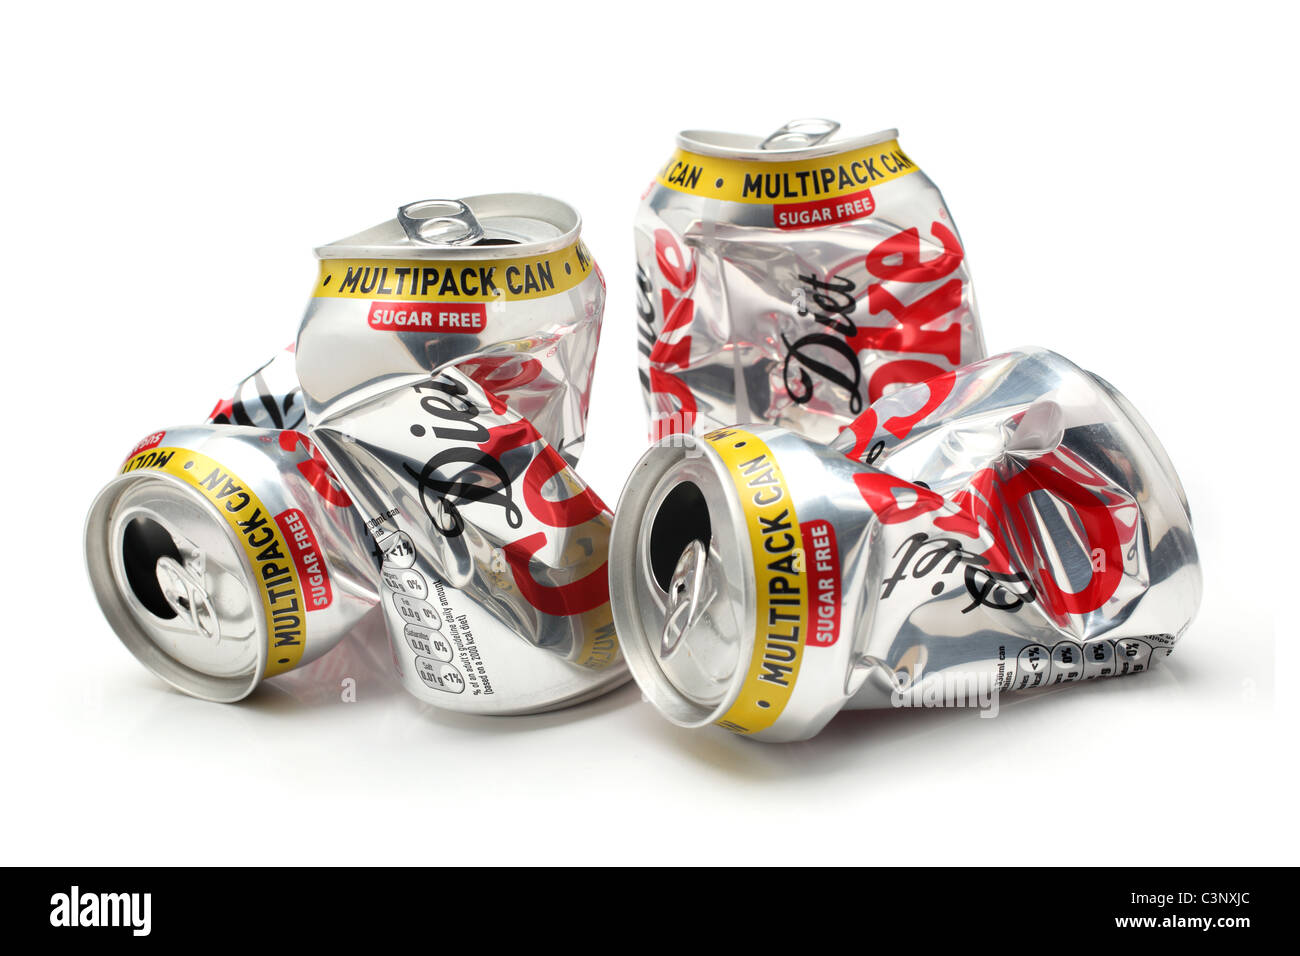 recycling tin metallic package - Stock Image